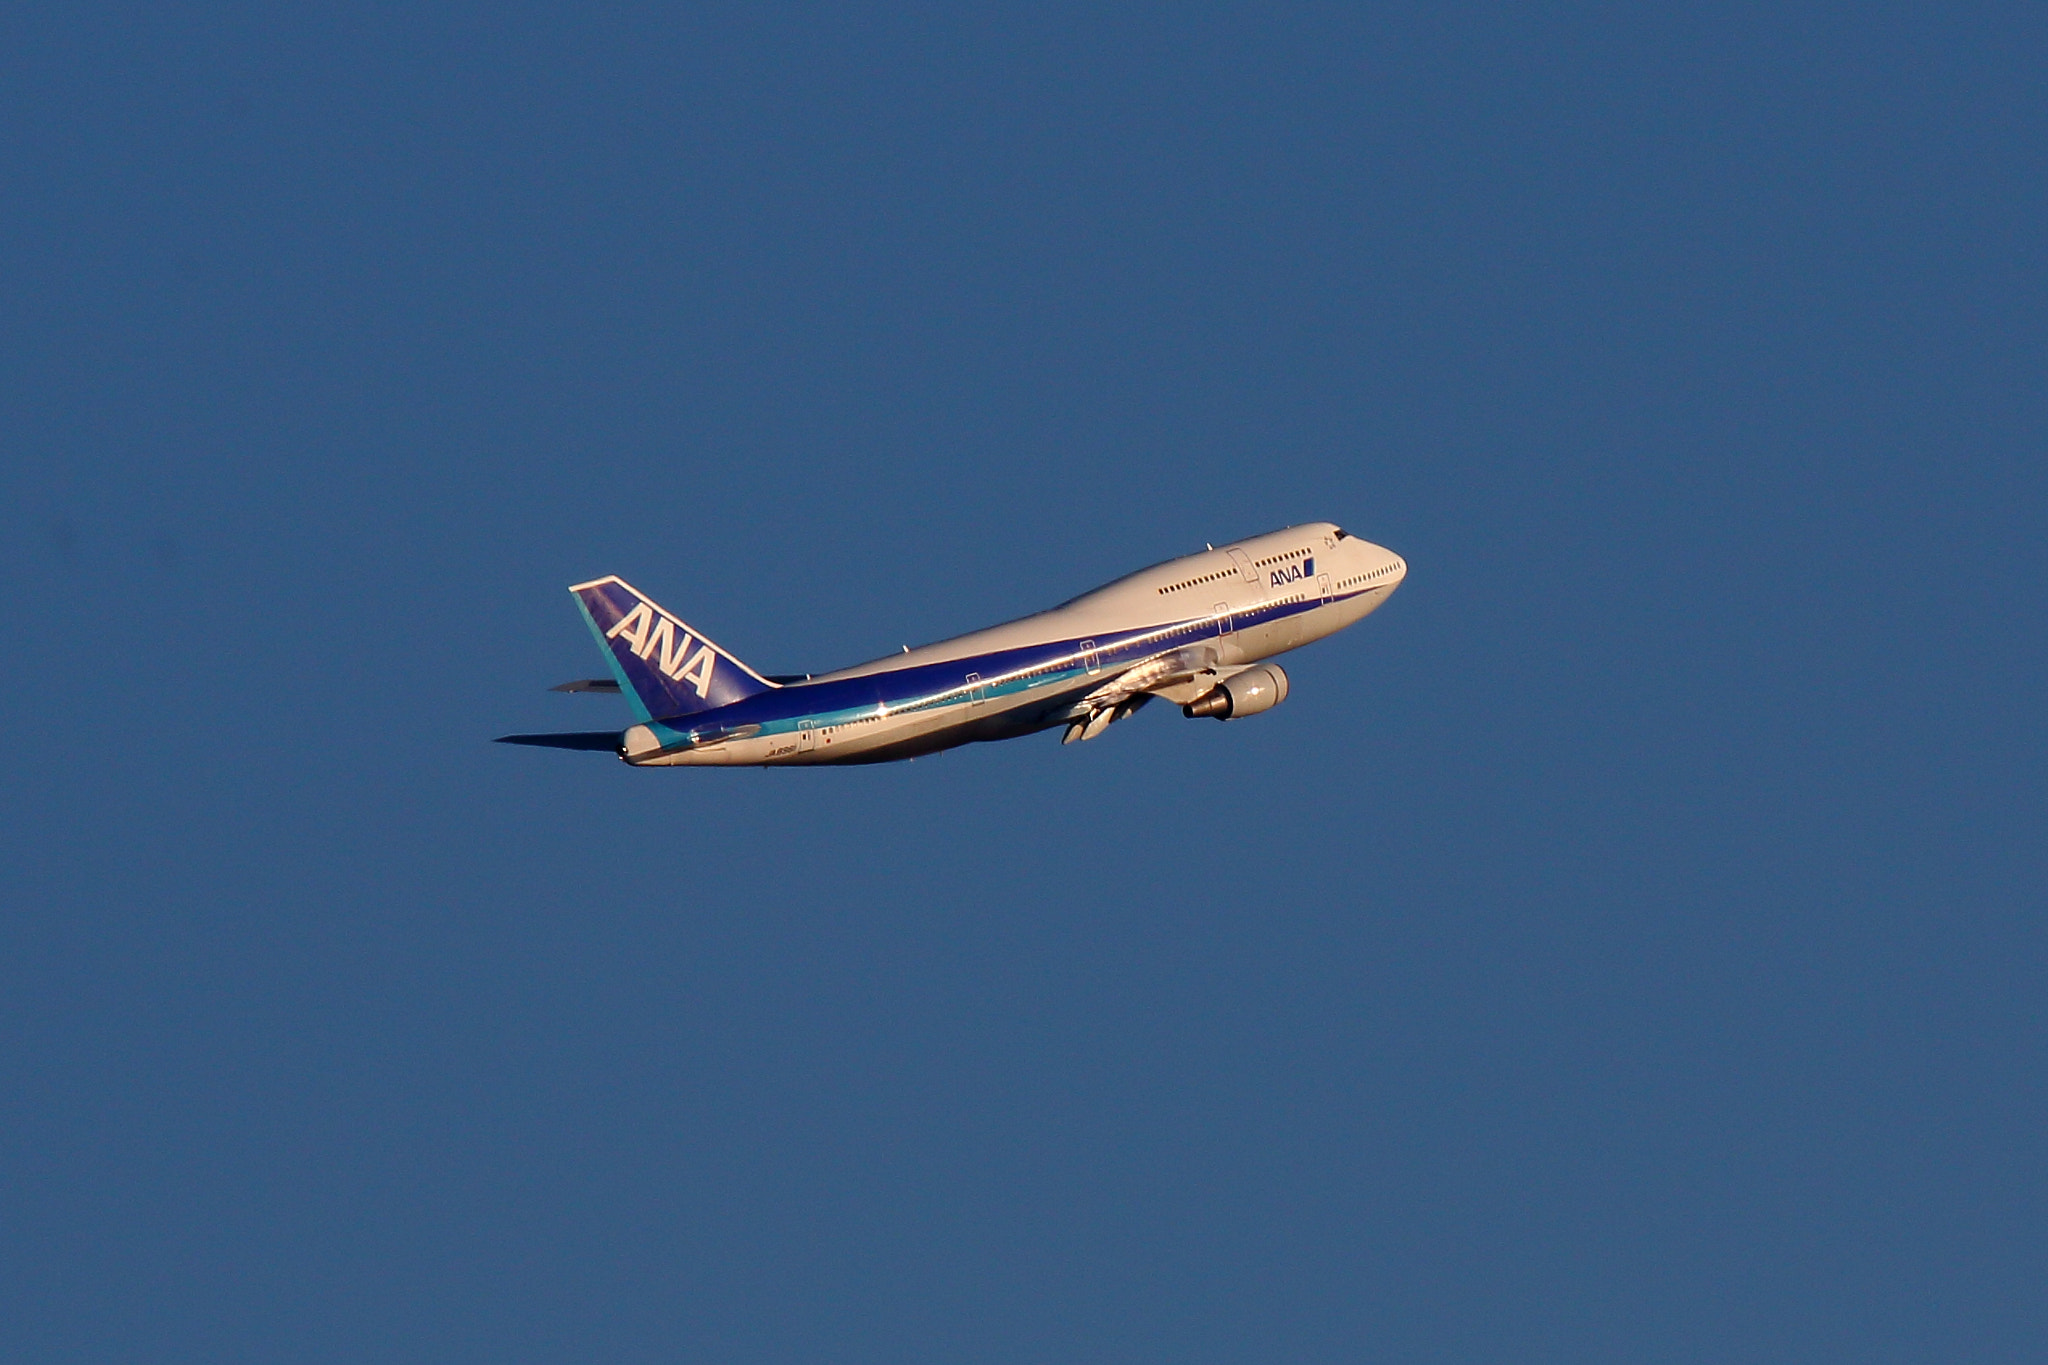 Photograph ANA Boeing 747-400 after taking off by Kat Konishi on 500px